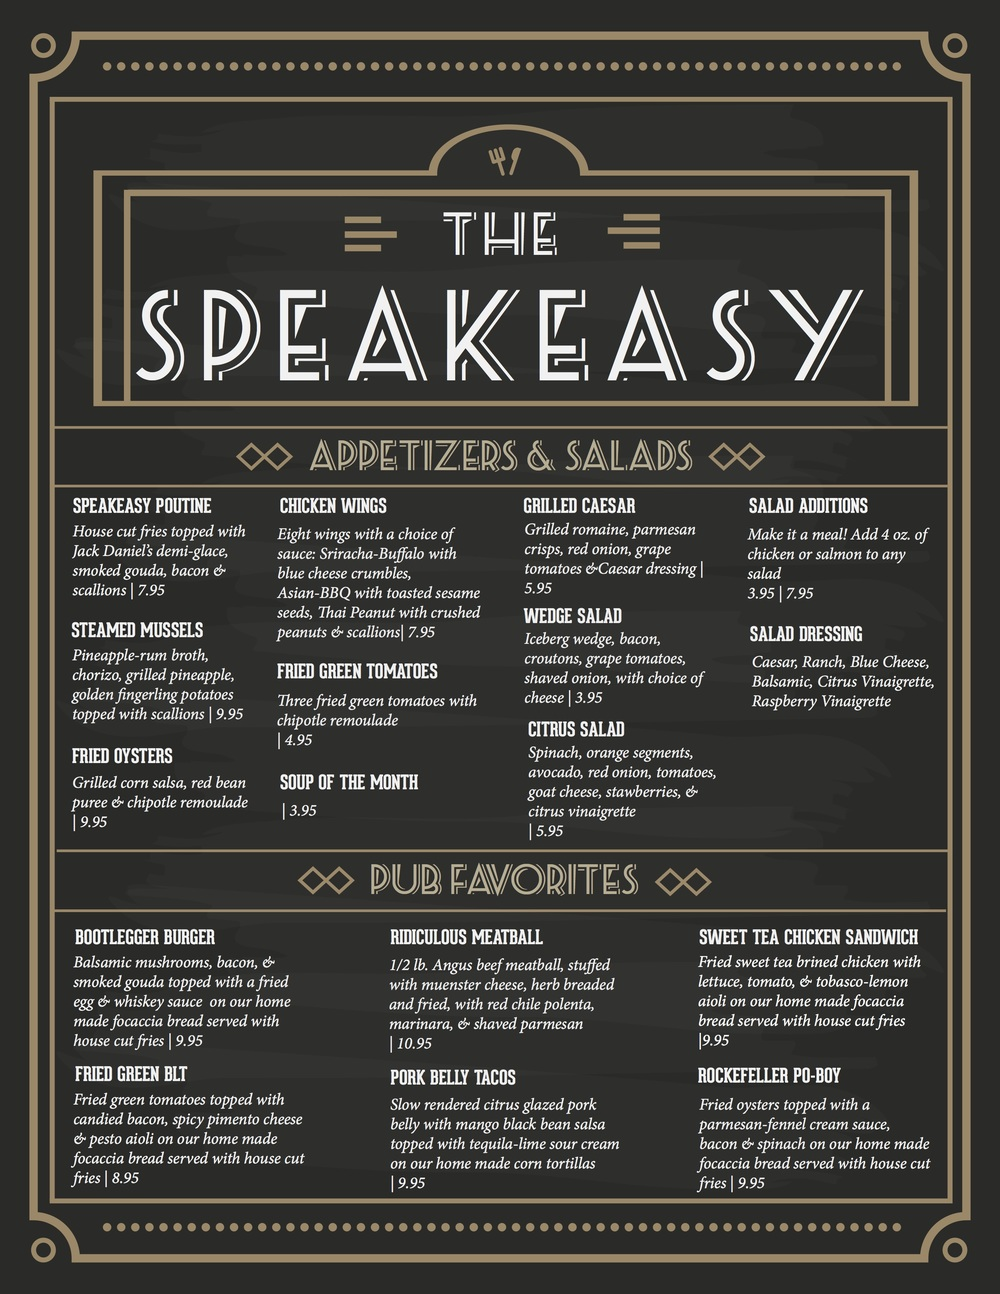 The Speakeasy Menu